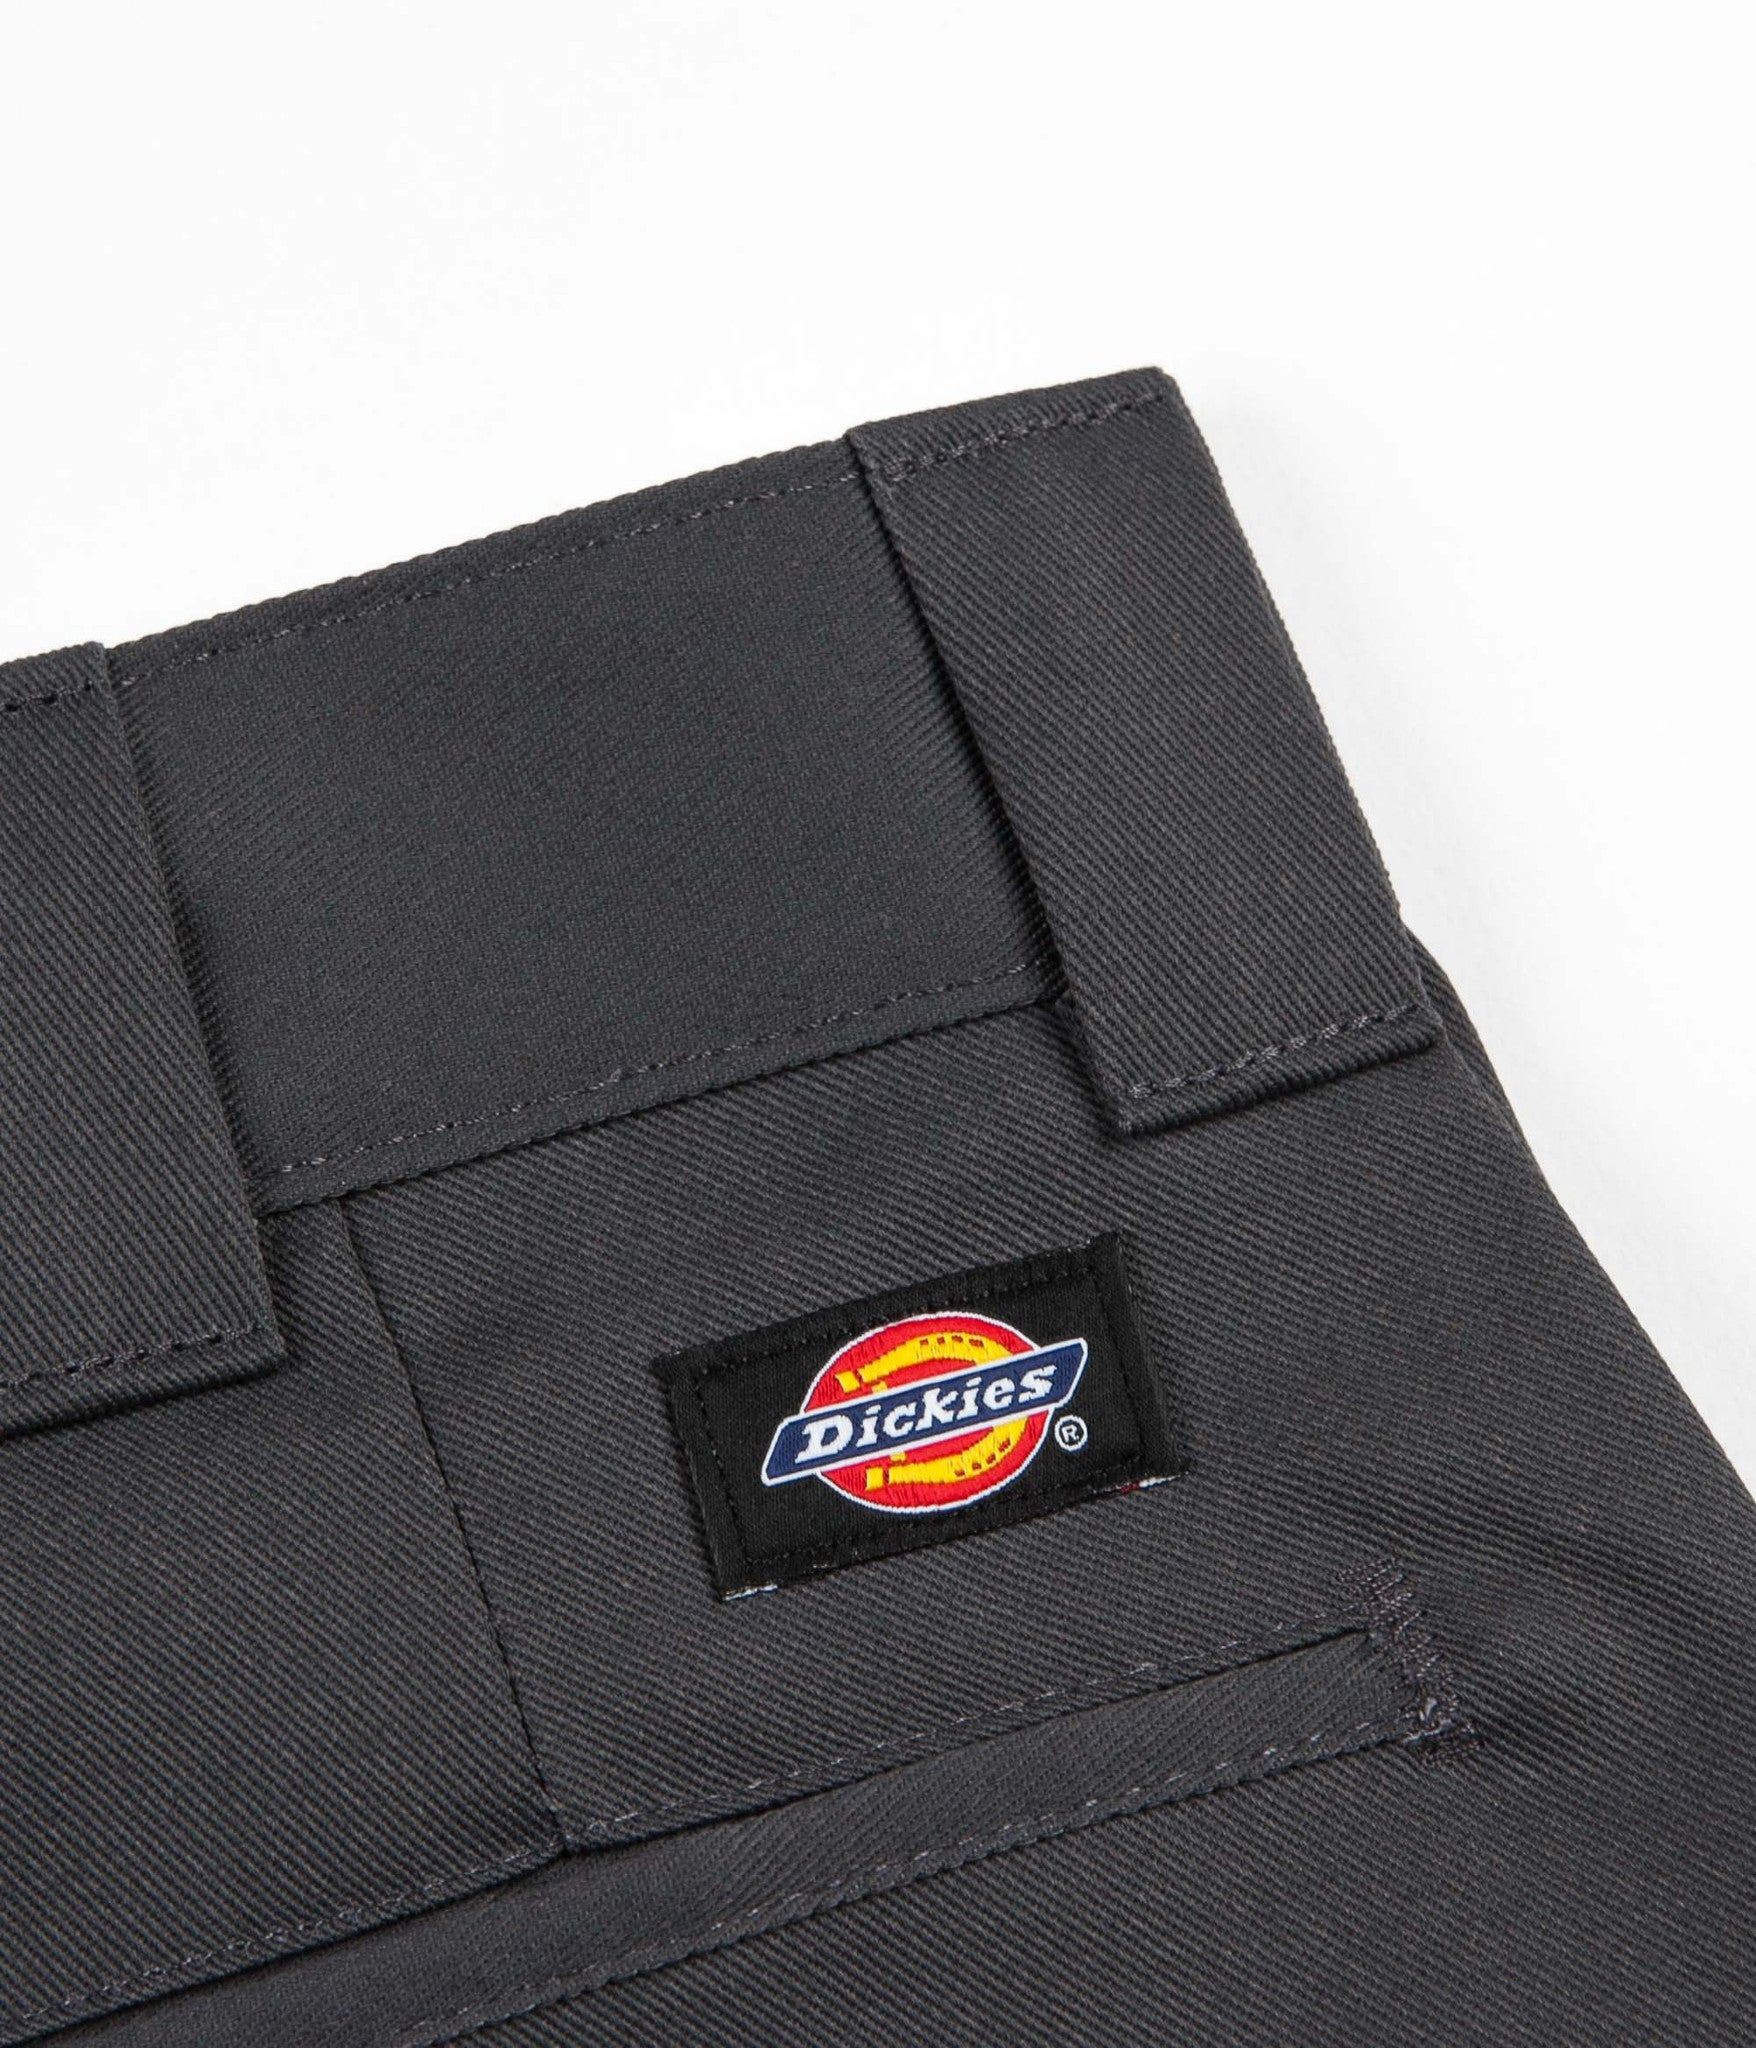 Dickies 873 Slim Straight Work Trousers - Charcoal Grey